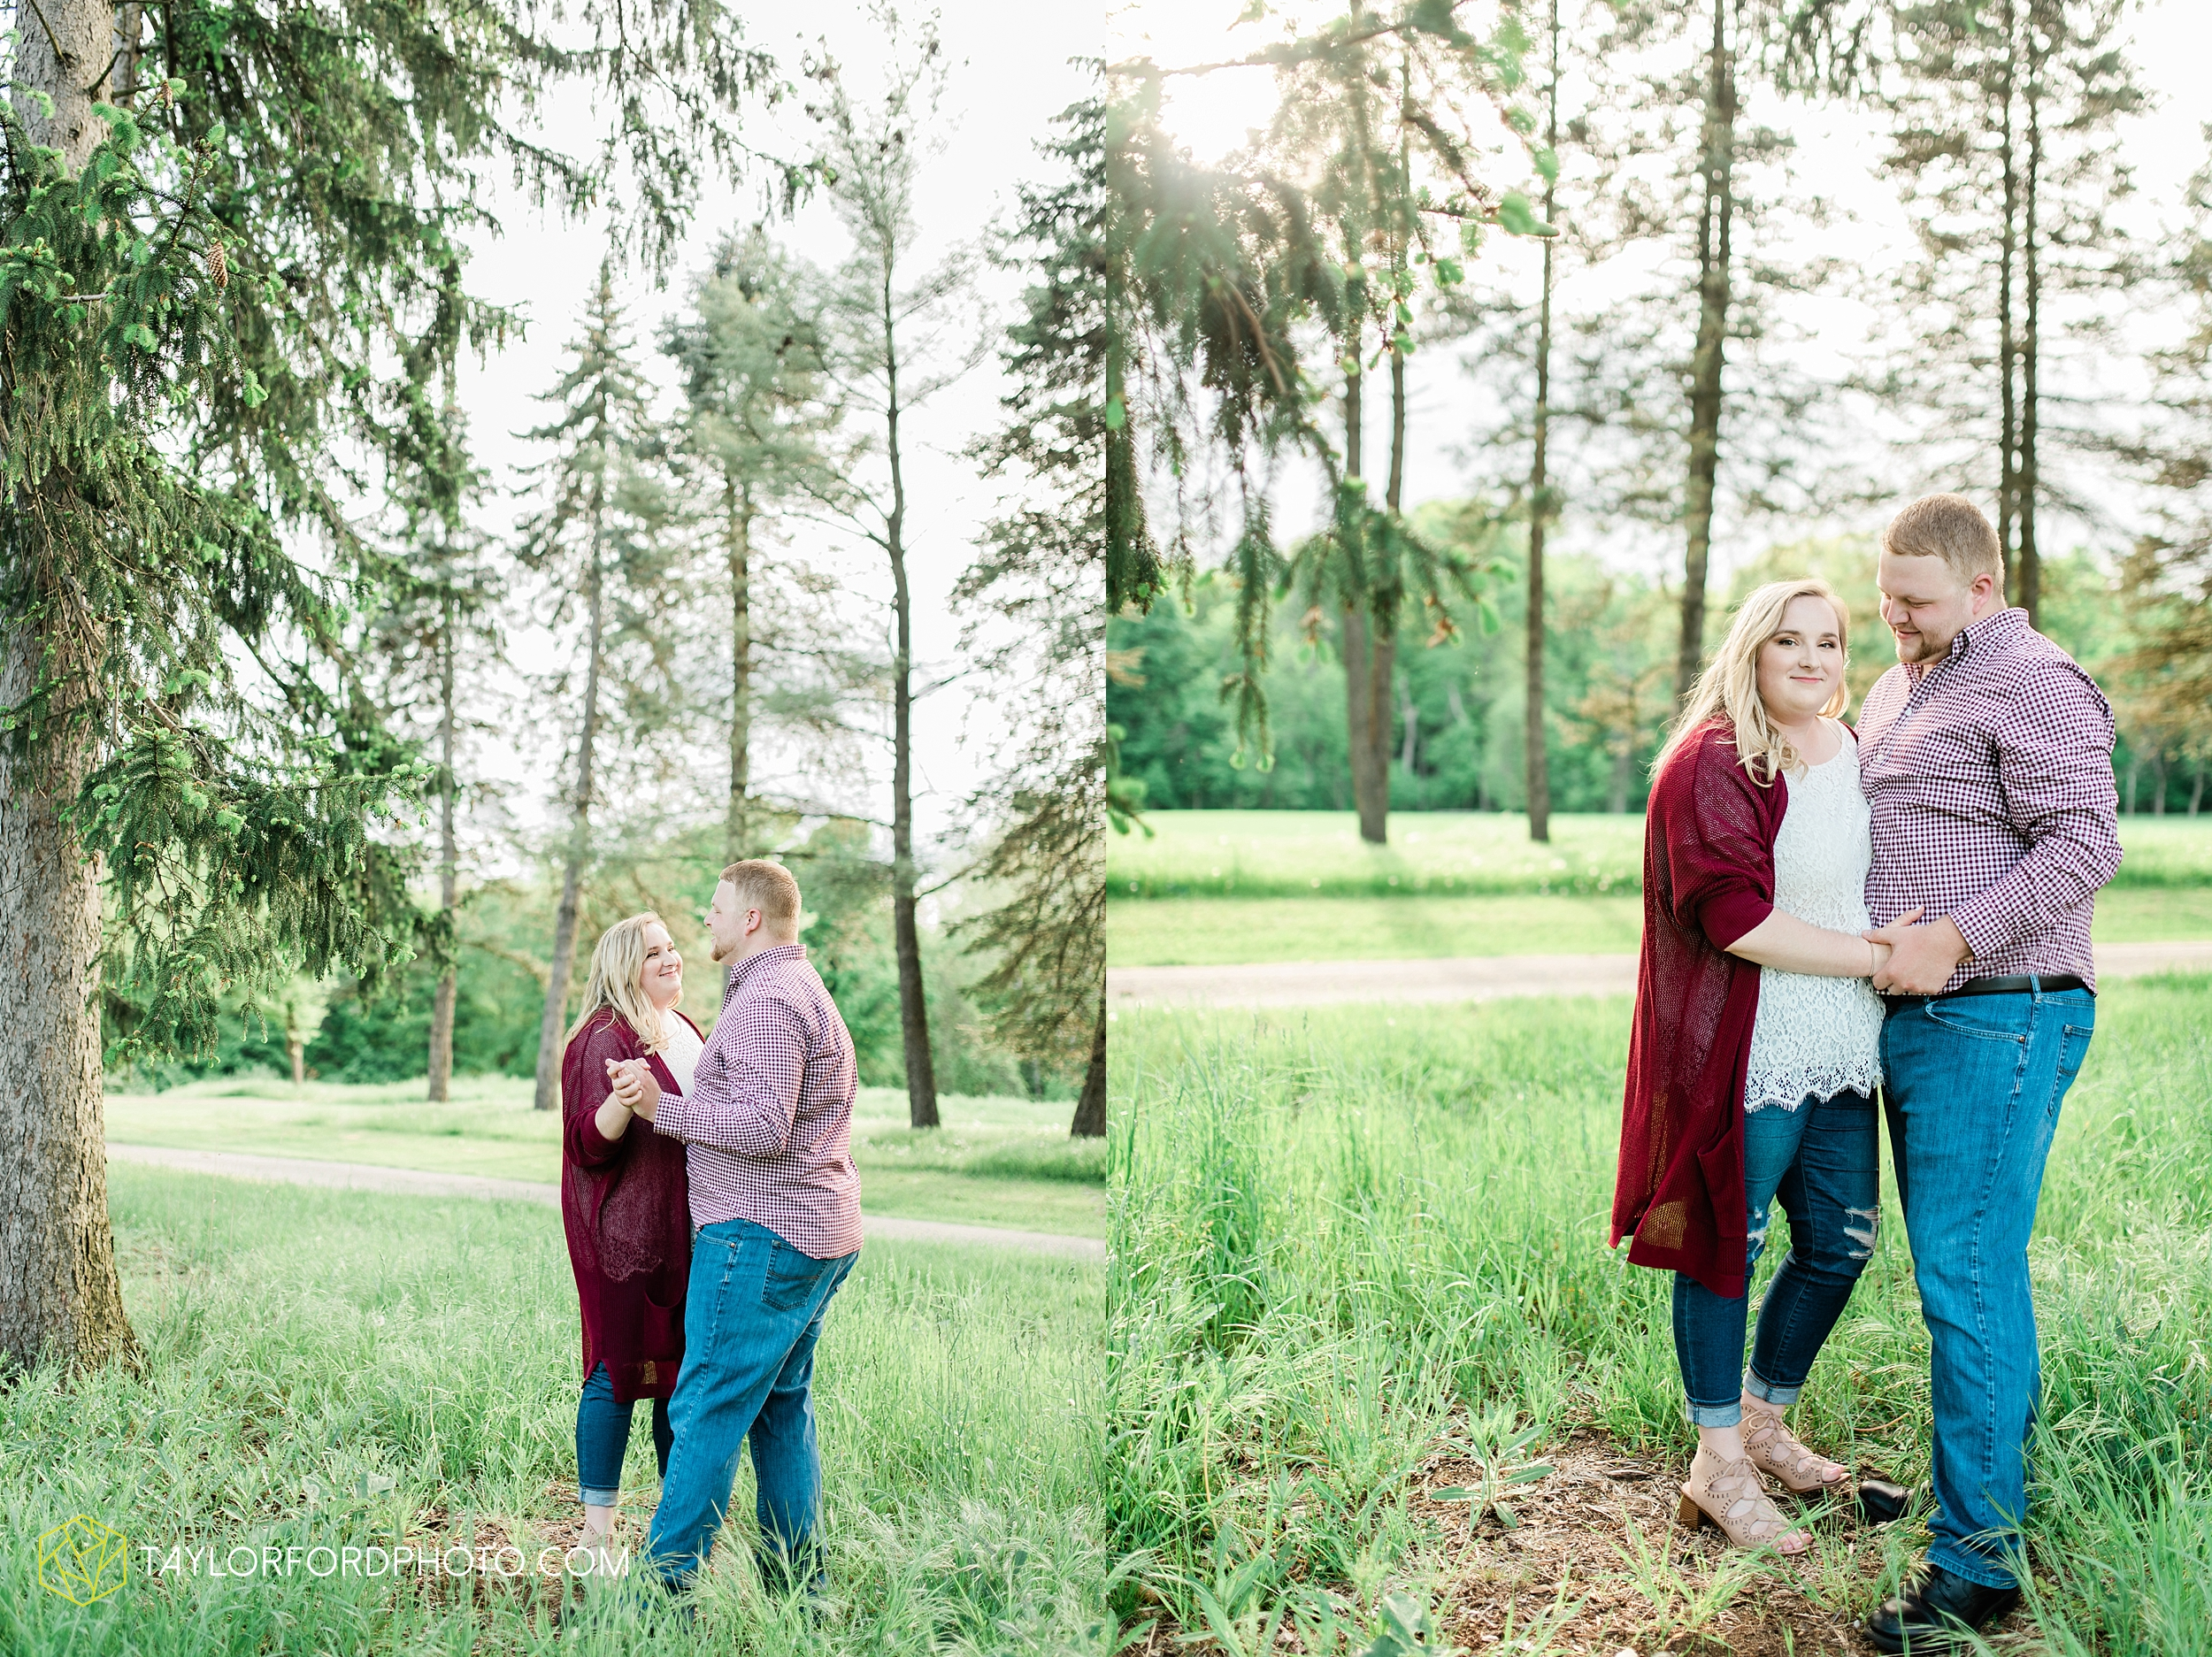 downtown-ipfw-fort-wayne-indiana-engagement-photographer-Taylor-Ford-Photography_7494.jpg